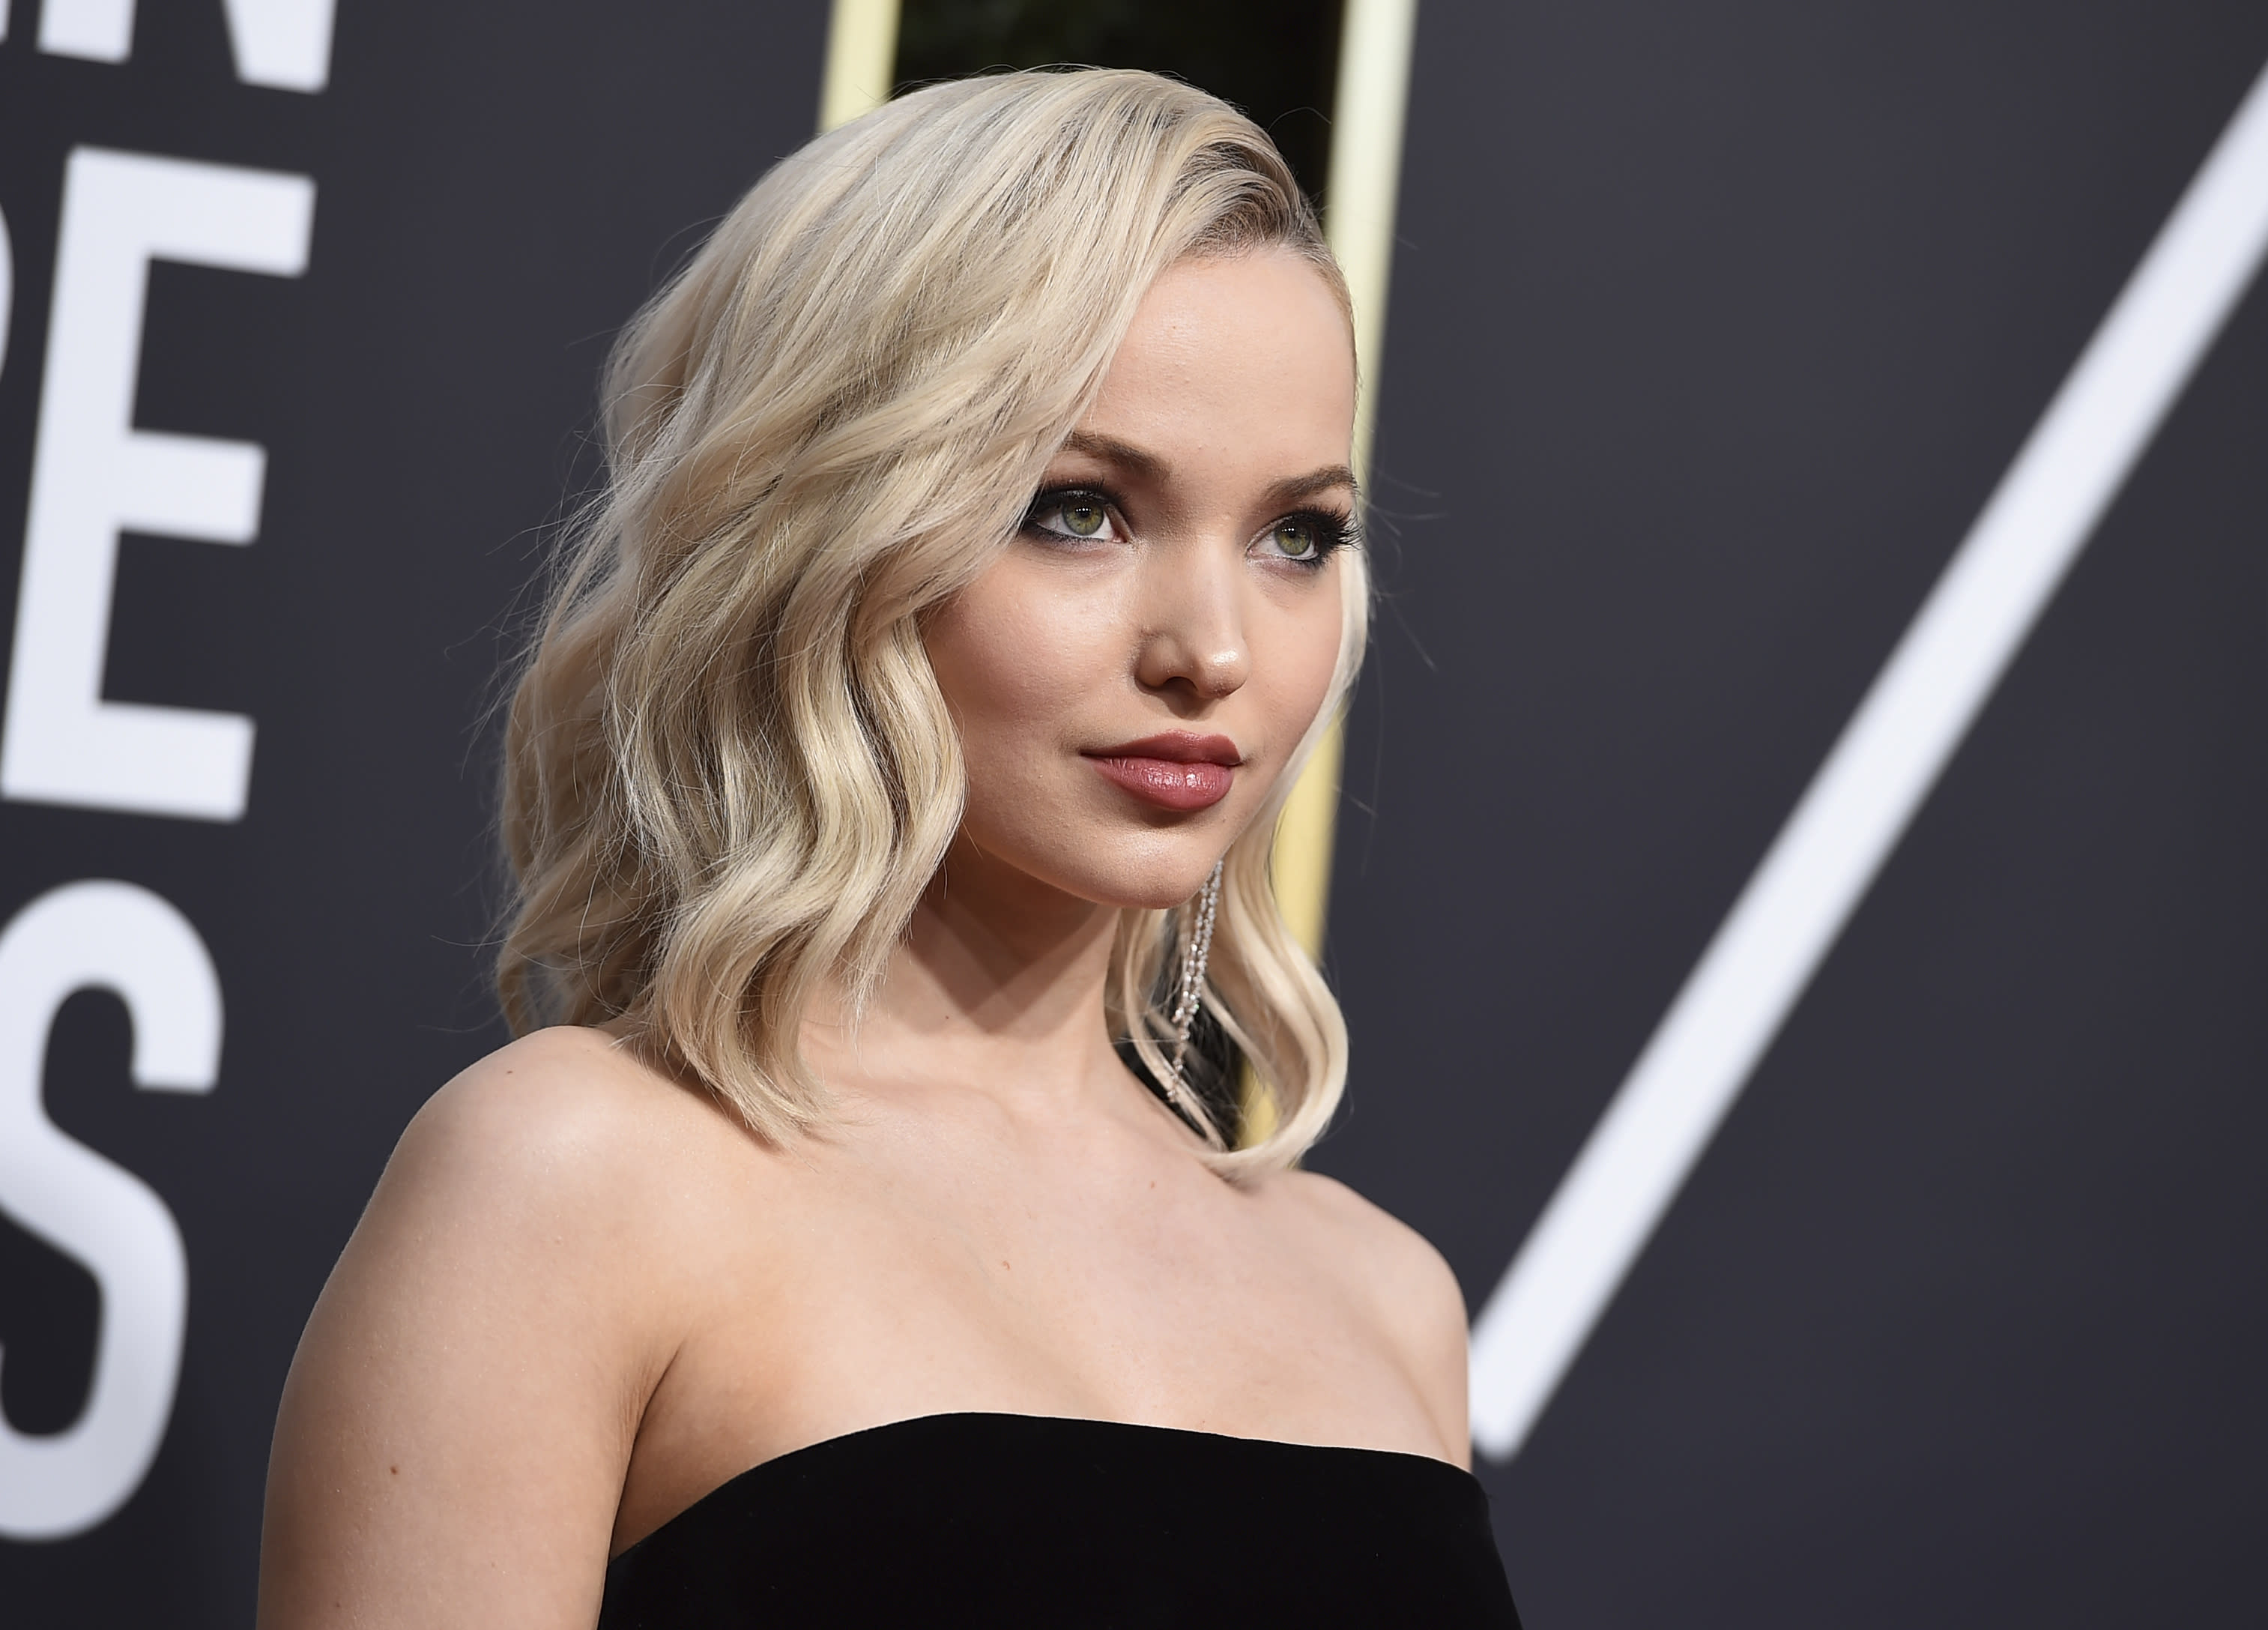 Dove Cameron arrives at the 75th annual Golden Globe Awards at the Beverly Hilton Hotel on Sunday, Jan. 7, 2018, in Beverly Hills, Calif. (Photo by Jordan Strauss/Invision/AP)